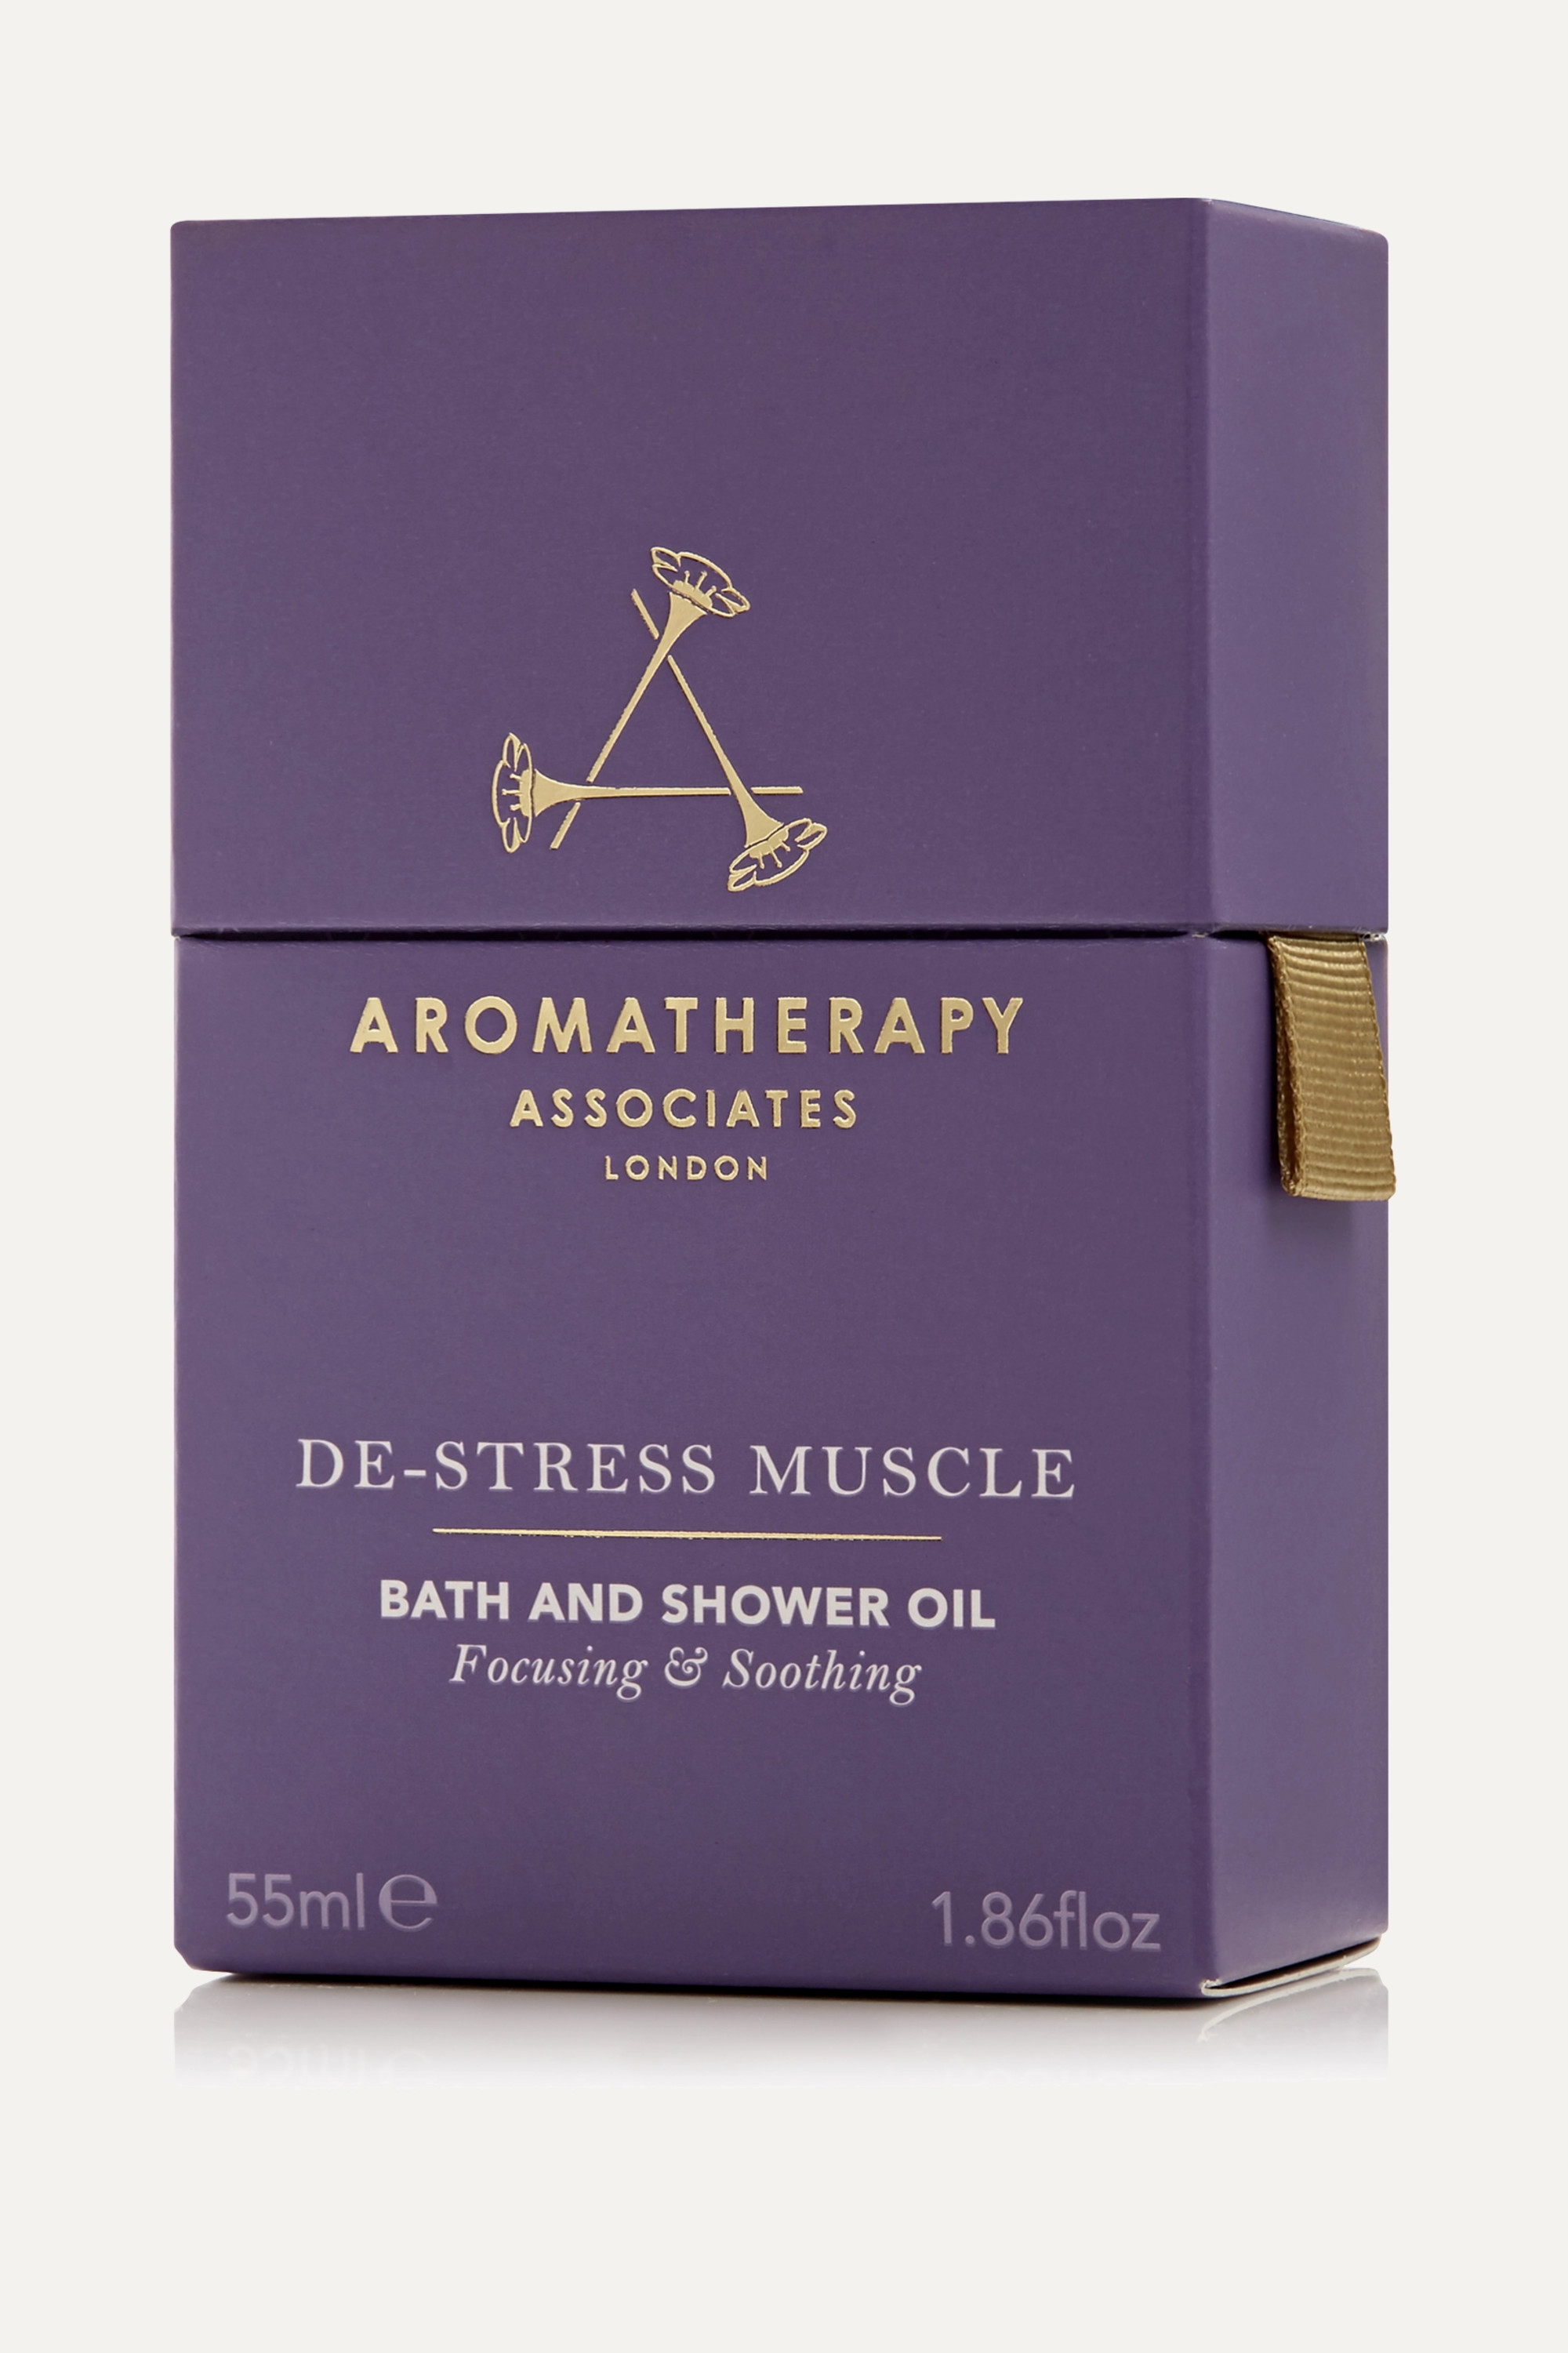 AROMATHERAPY ASSOCIATES De-Stress Muscle Bath and Shower Oil, 55ml